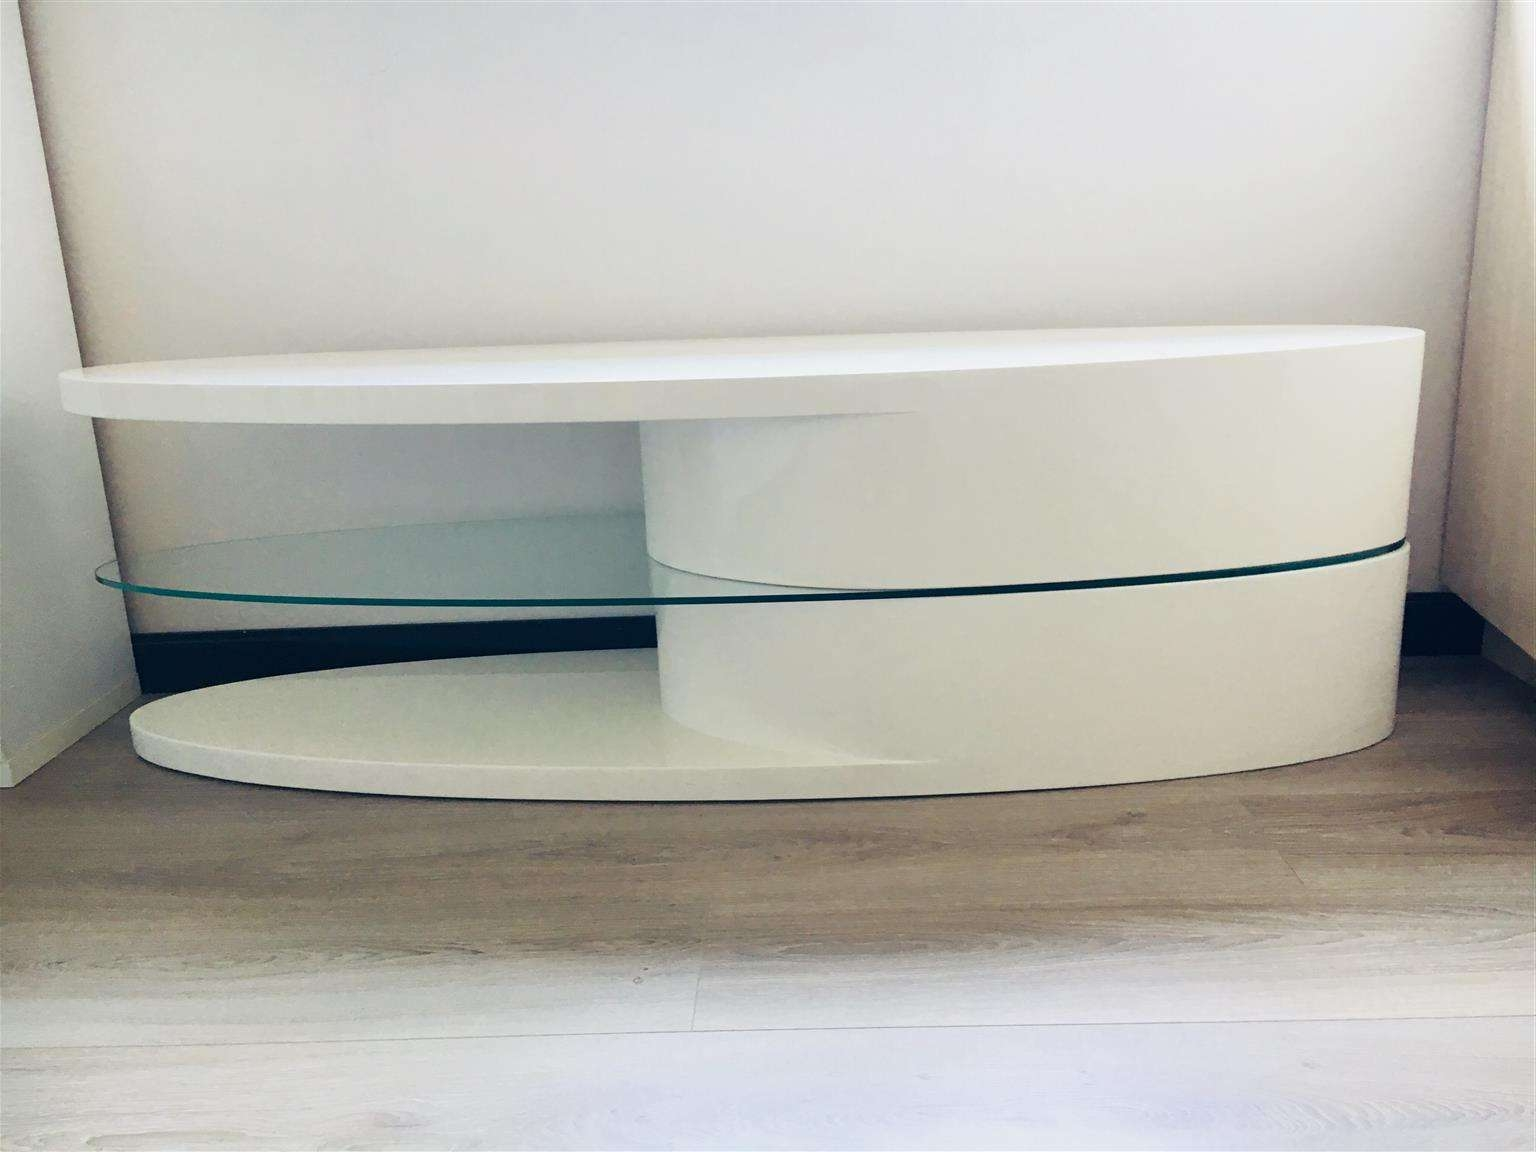 High Gloss White Tv Stand | Junk Mail With Regard To Gloss White Tv Stands (View 8 of 15)